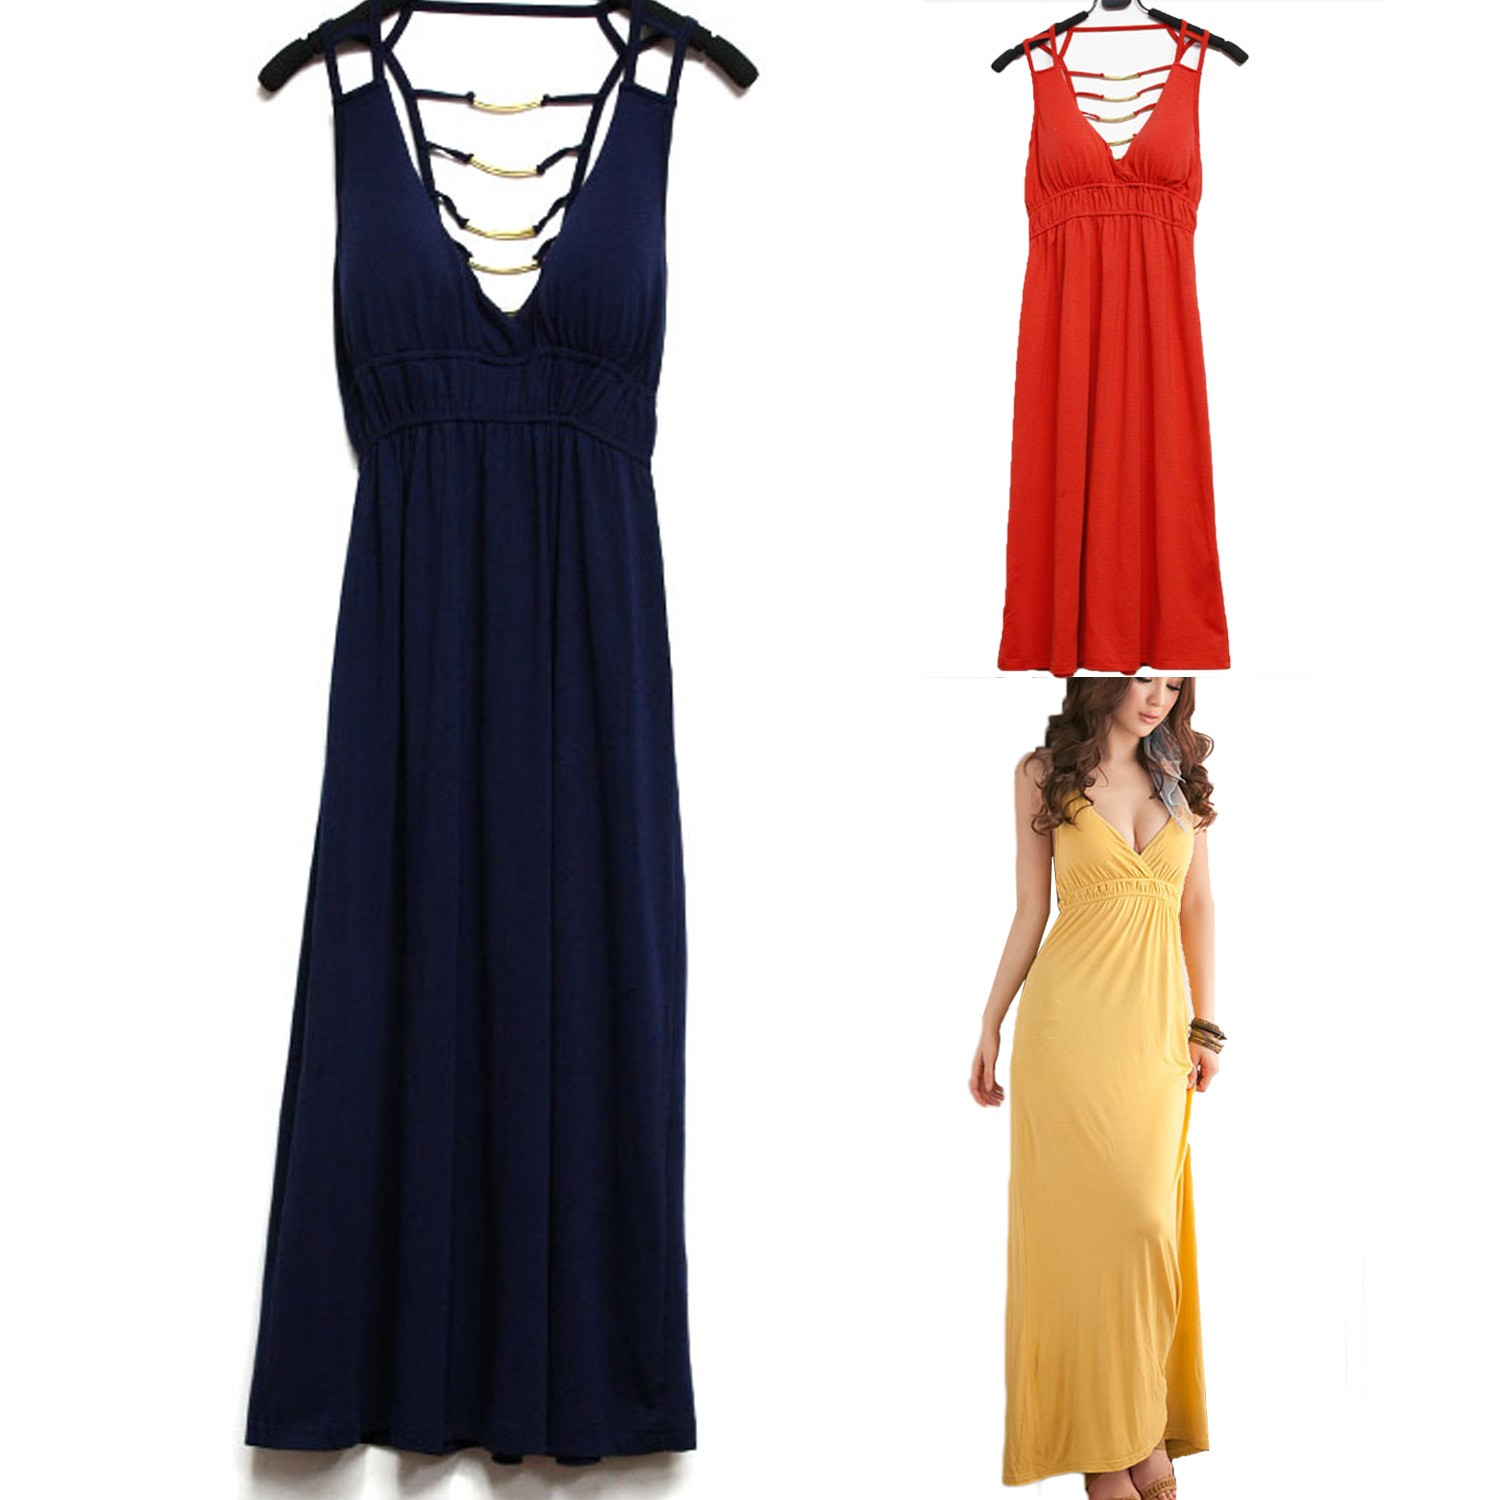 FREE S/H TO AU Navy/Red/Yellow Womens Backless Deep V Maxi Long Dress AU sz S